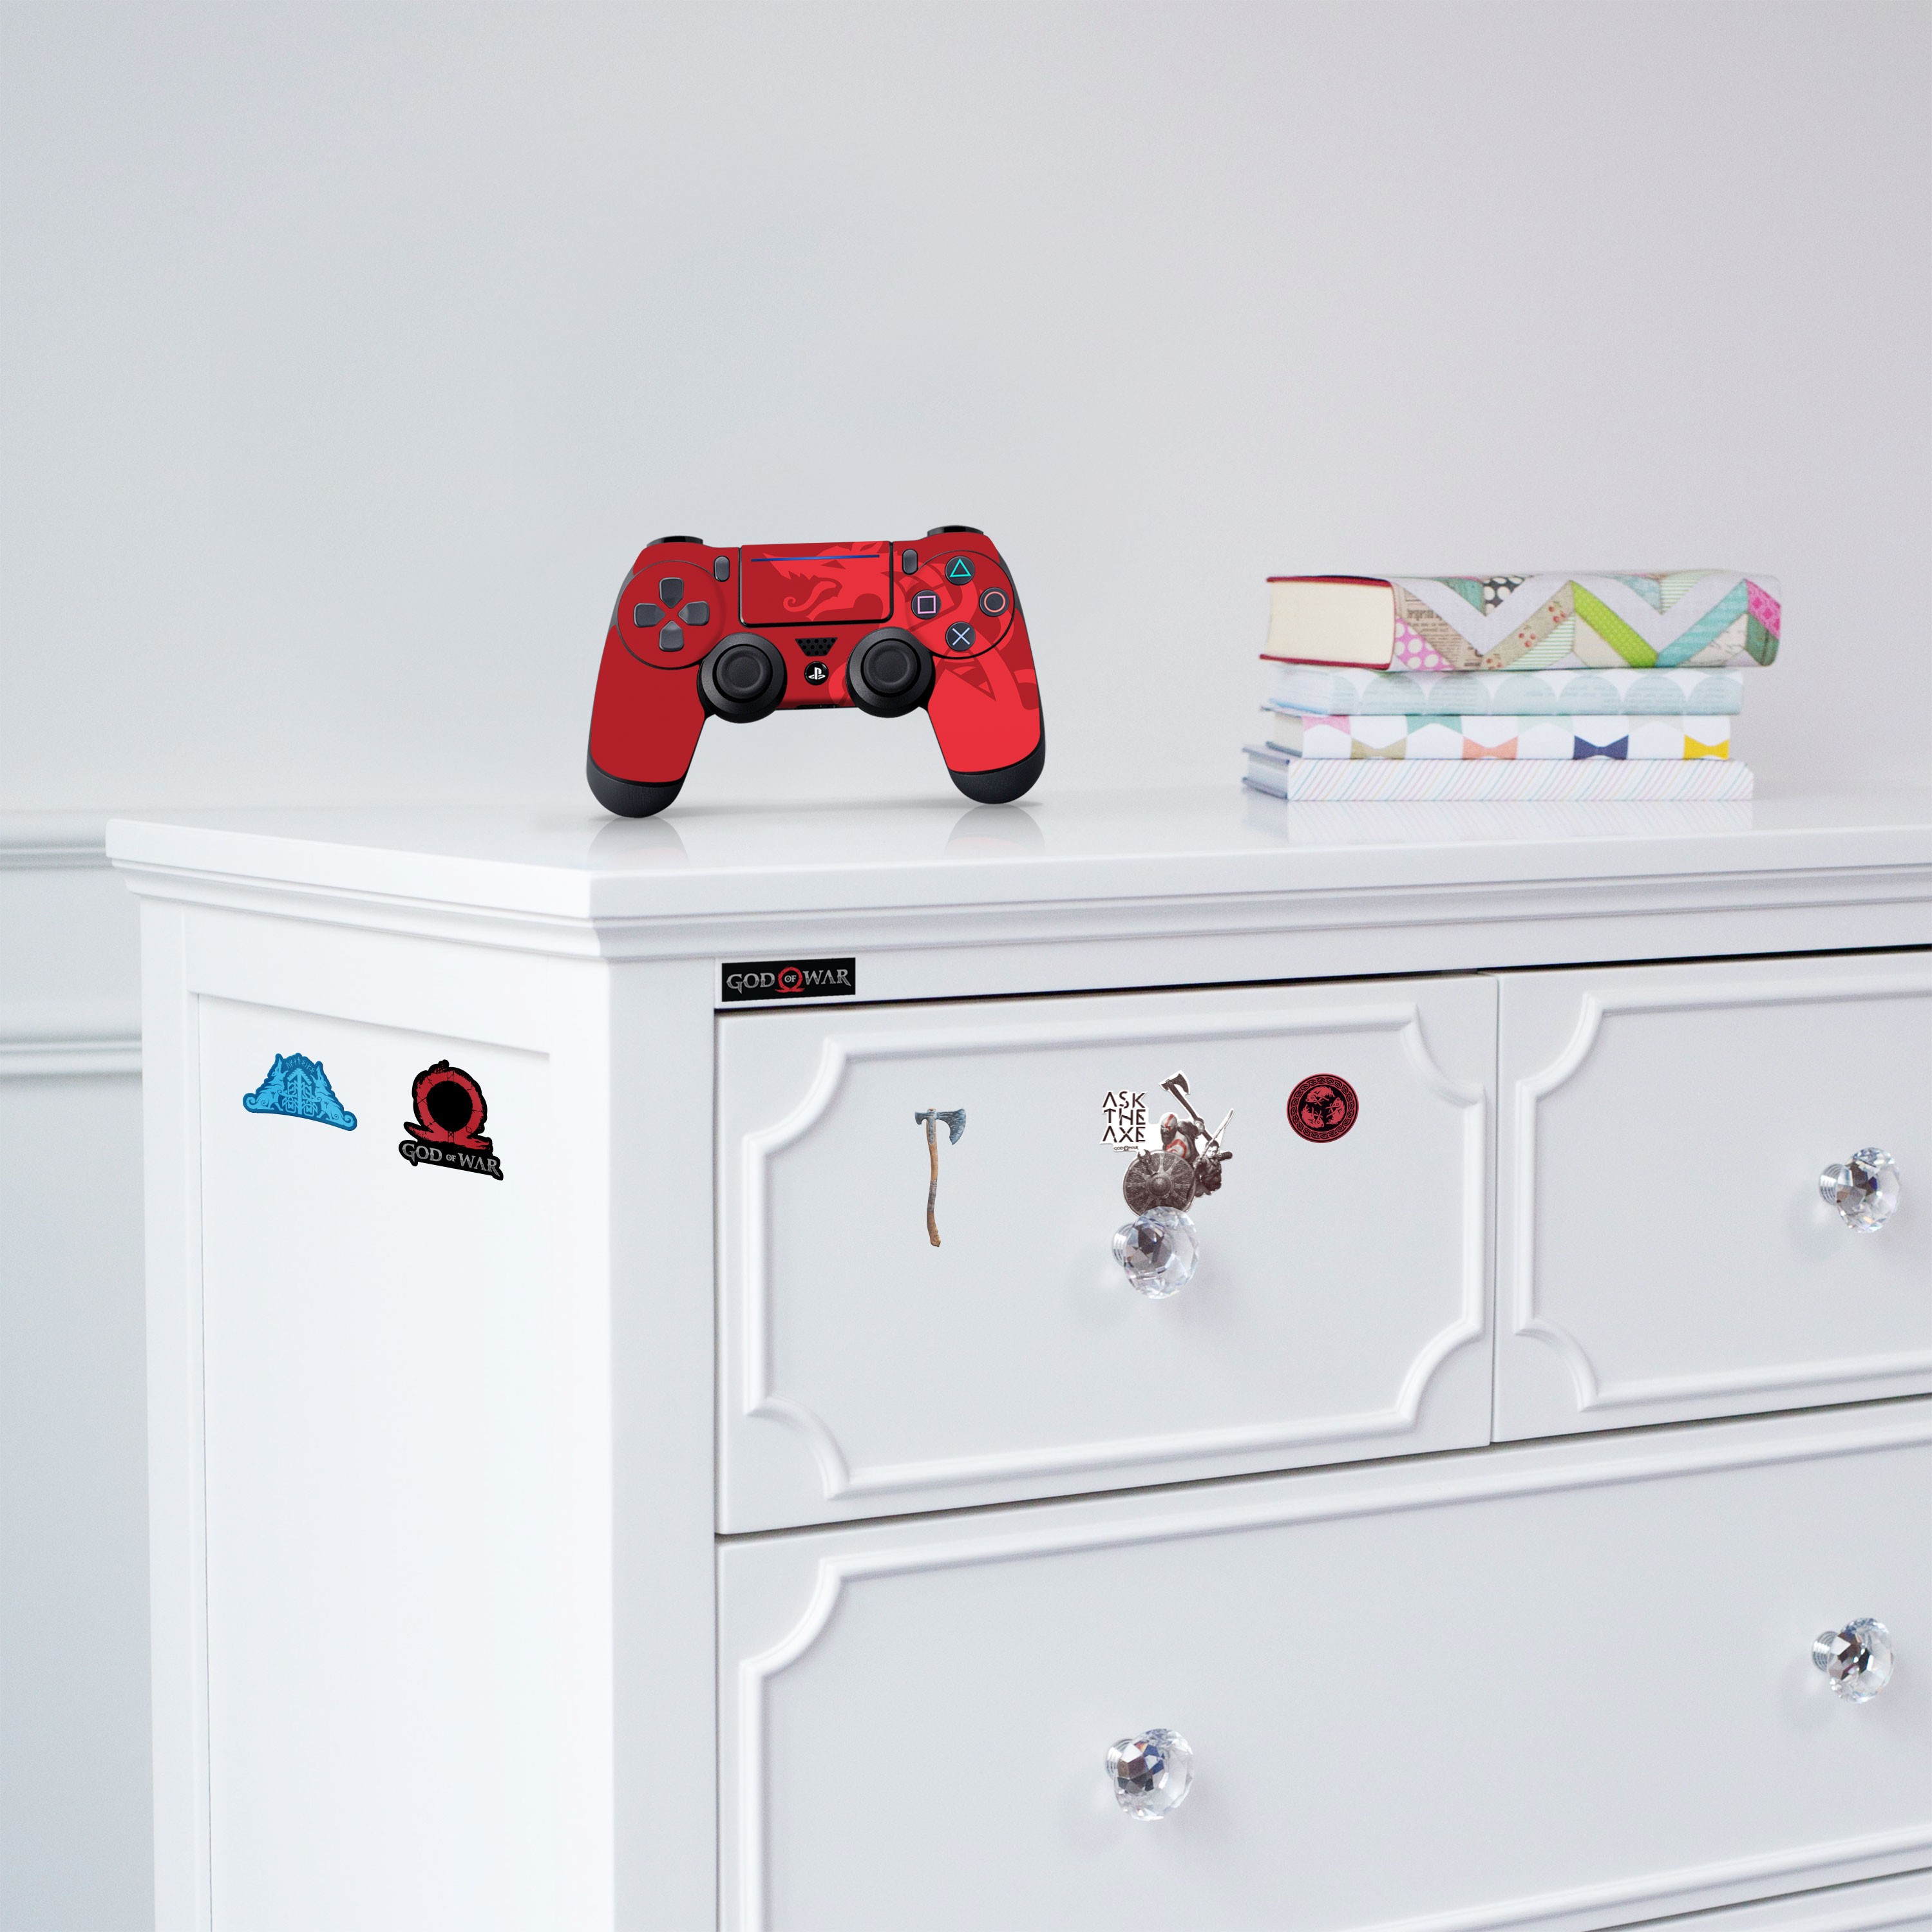 """Officially Licensed PlayStation 4 God of War DUALSHOCK 4 Wireless Controller Skin and Tech Decals """"Red Dragon"""""""